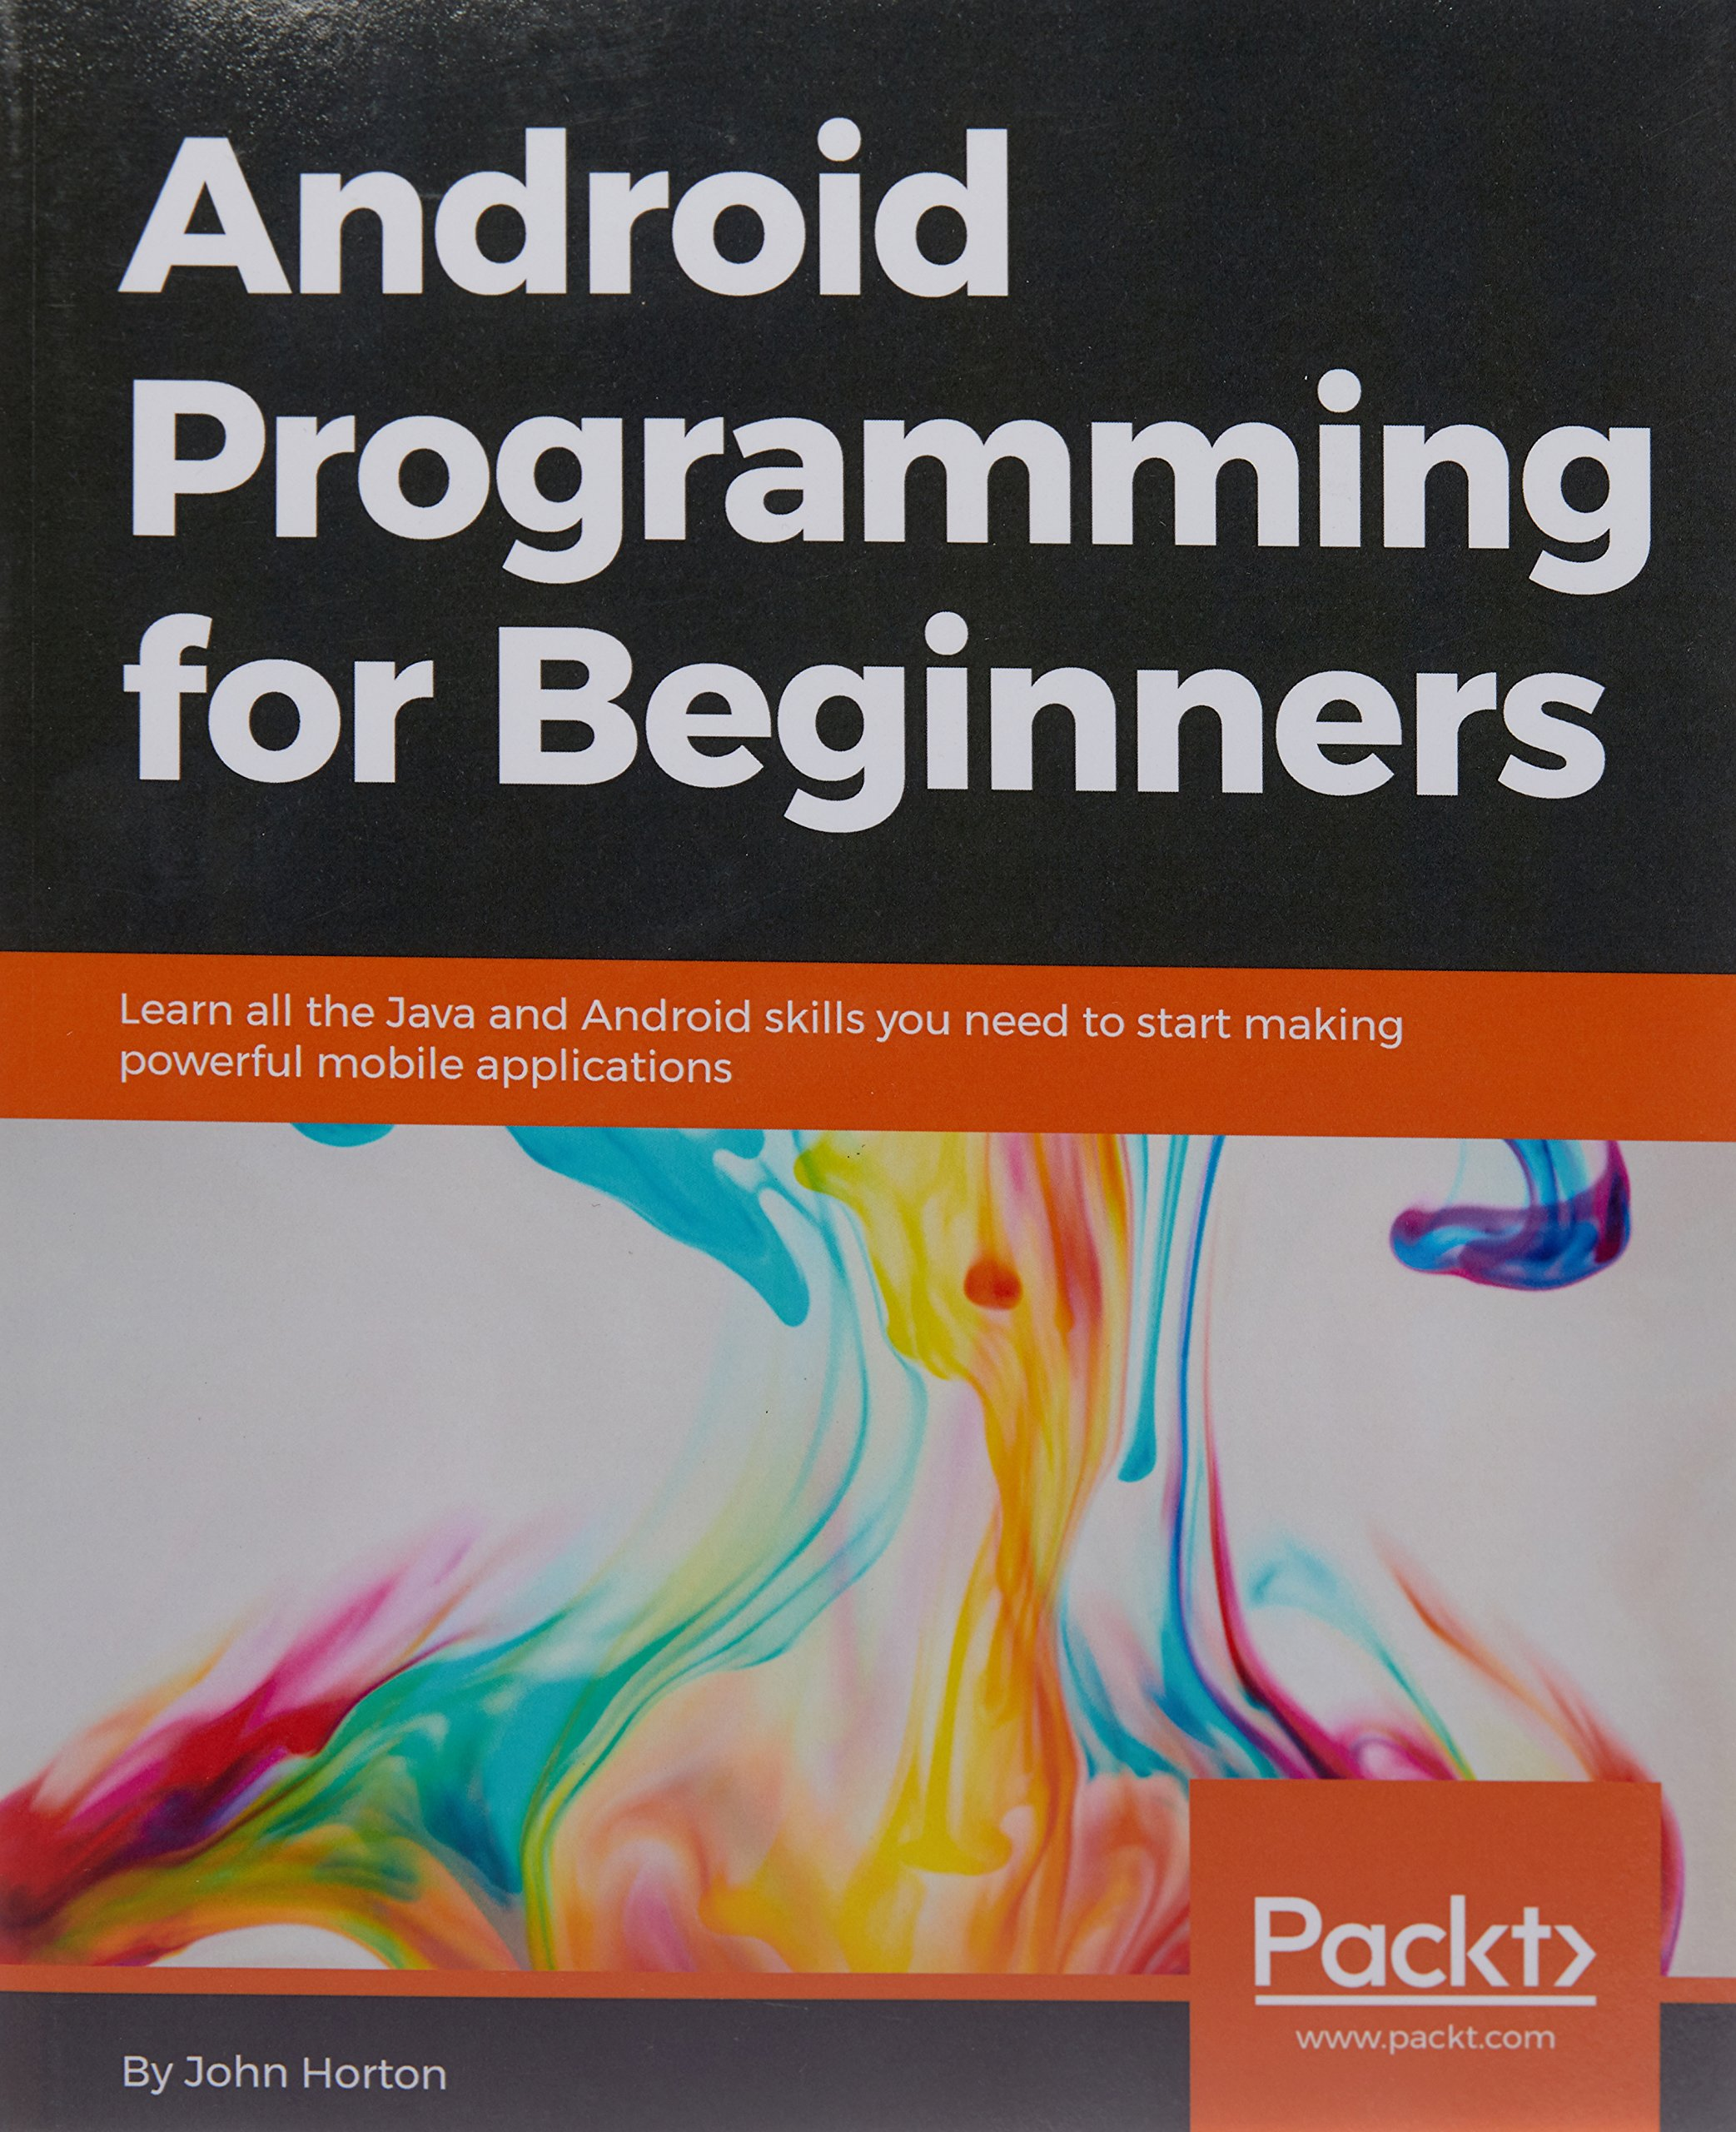 Android Programming for Beginners: Learn all the Java and